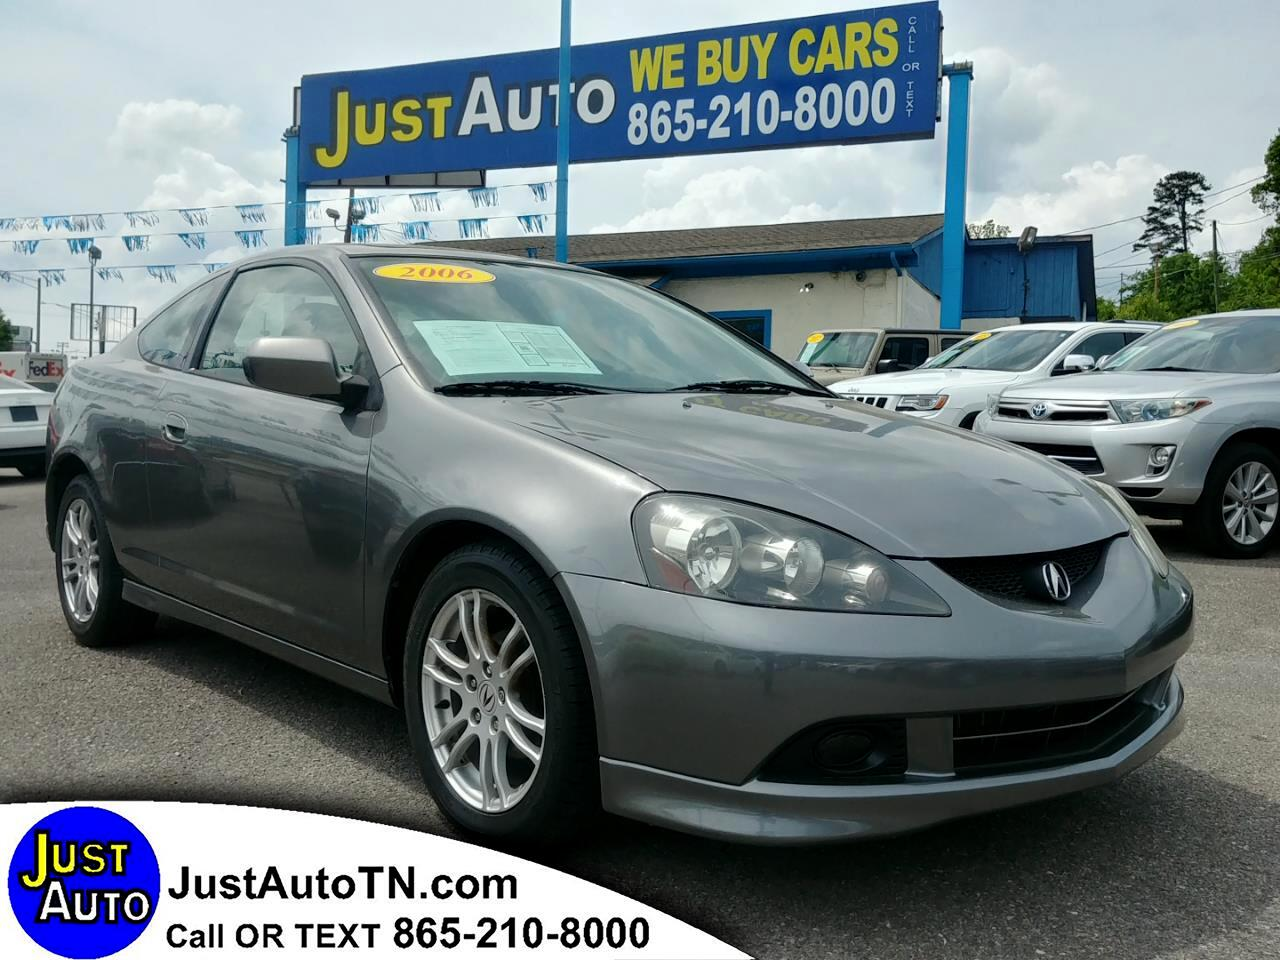 2006 Acura RSX 2dr Cpe AT